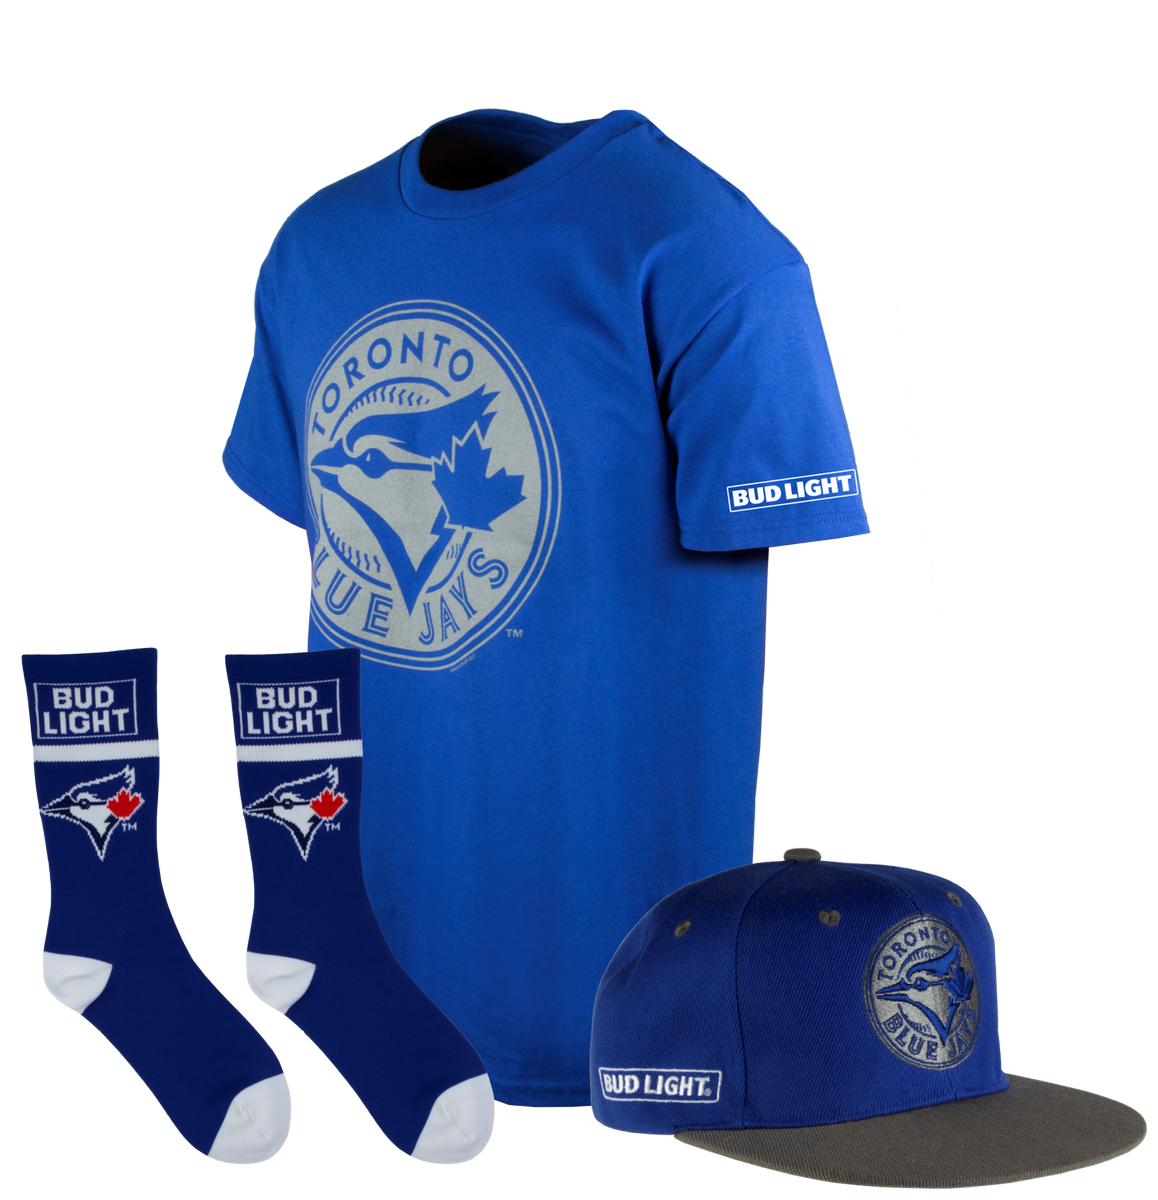 thickwood wine on twitter budlight 24 cans get 1 of 3 bluejays